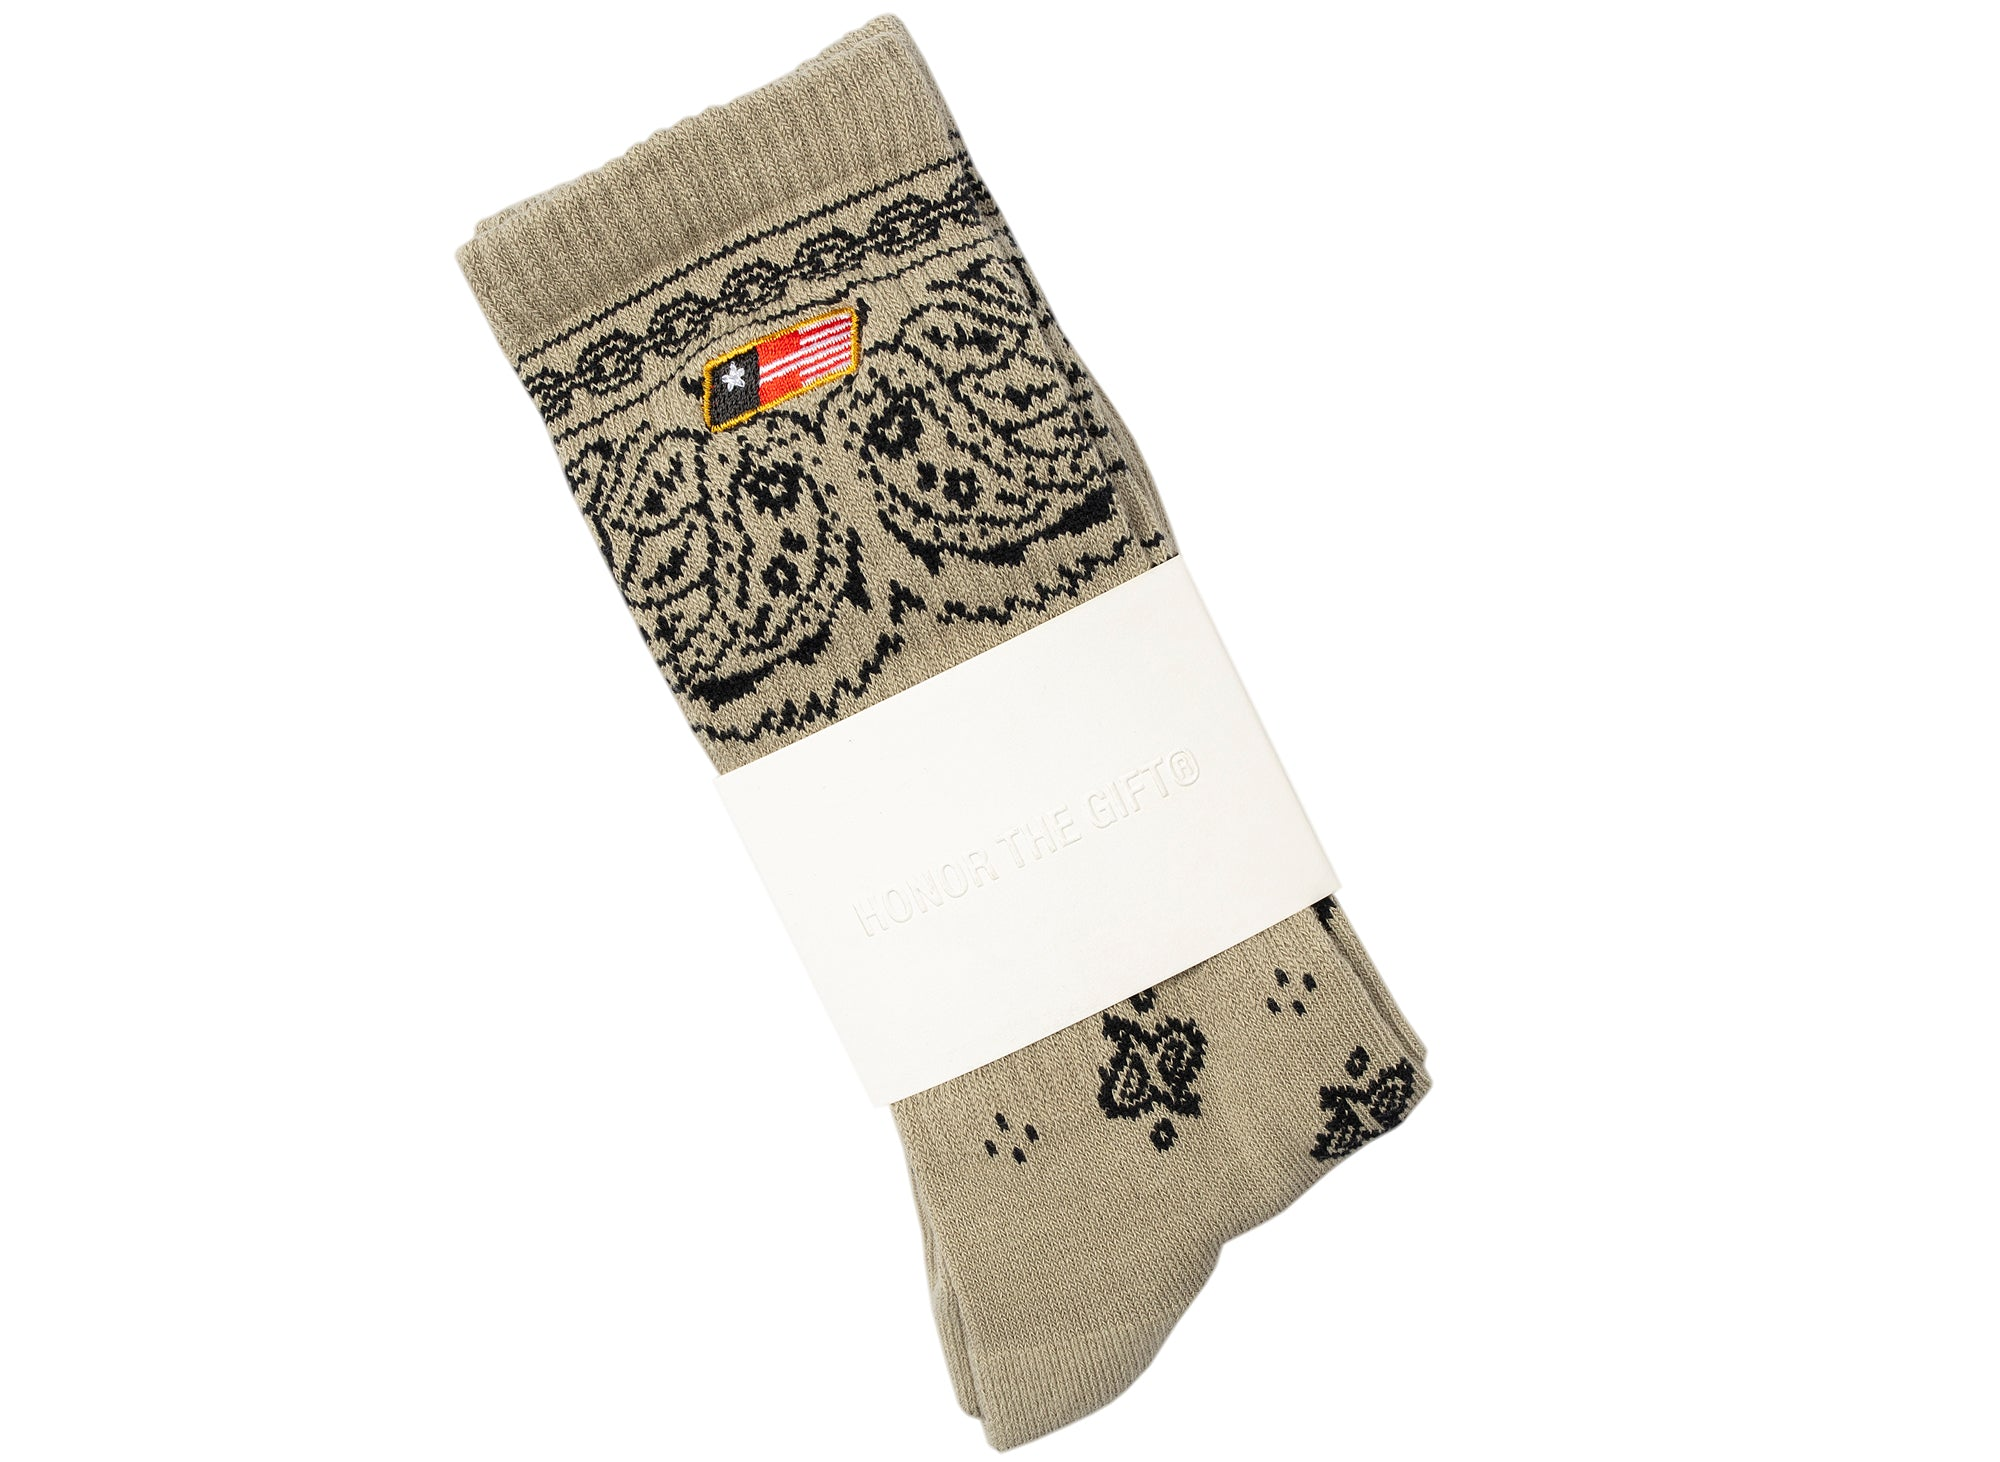 Honor the Gift Bandana Socks in Khaki xld